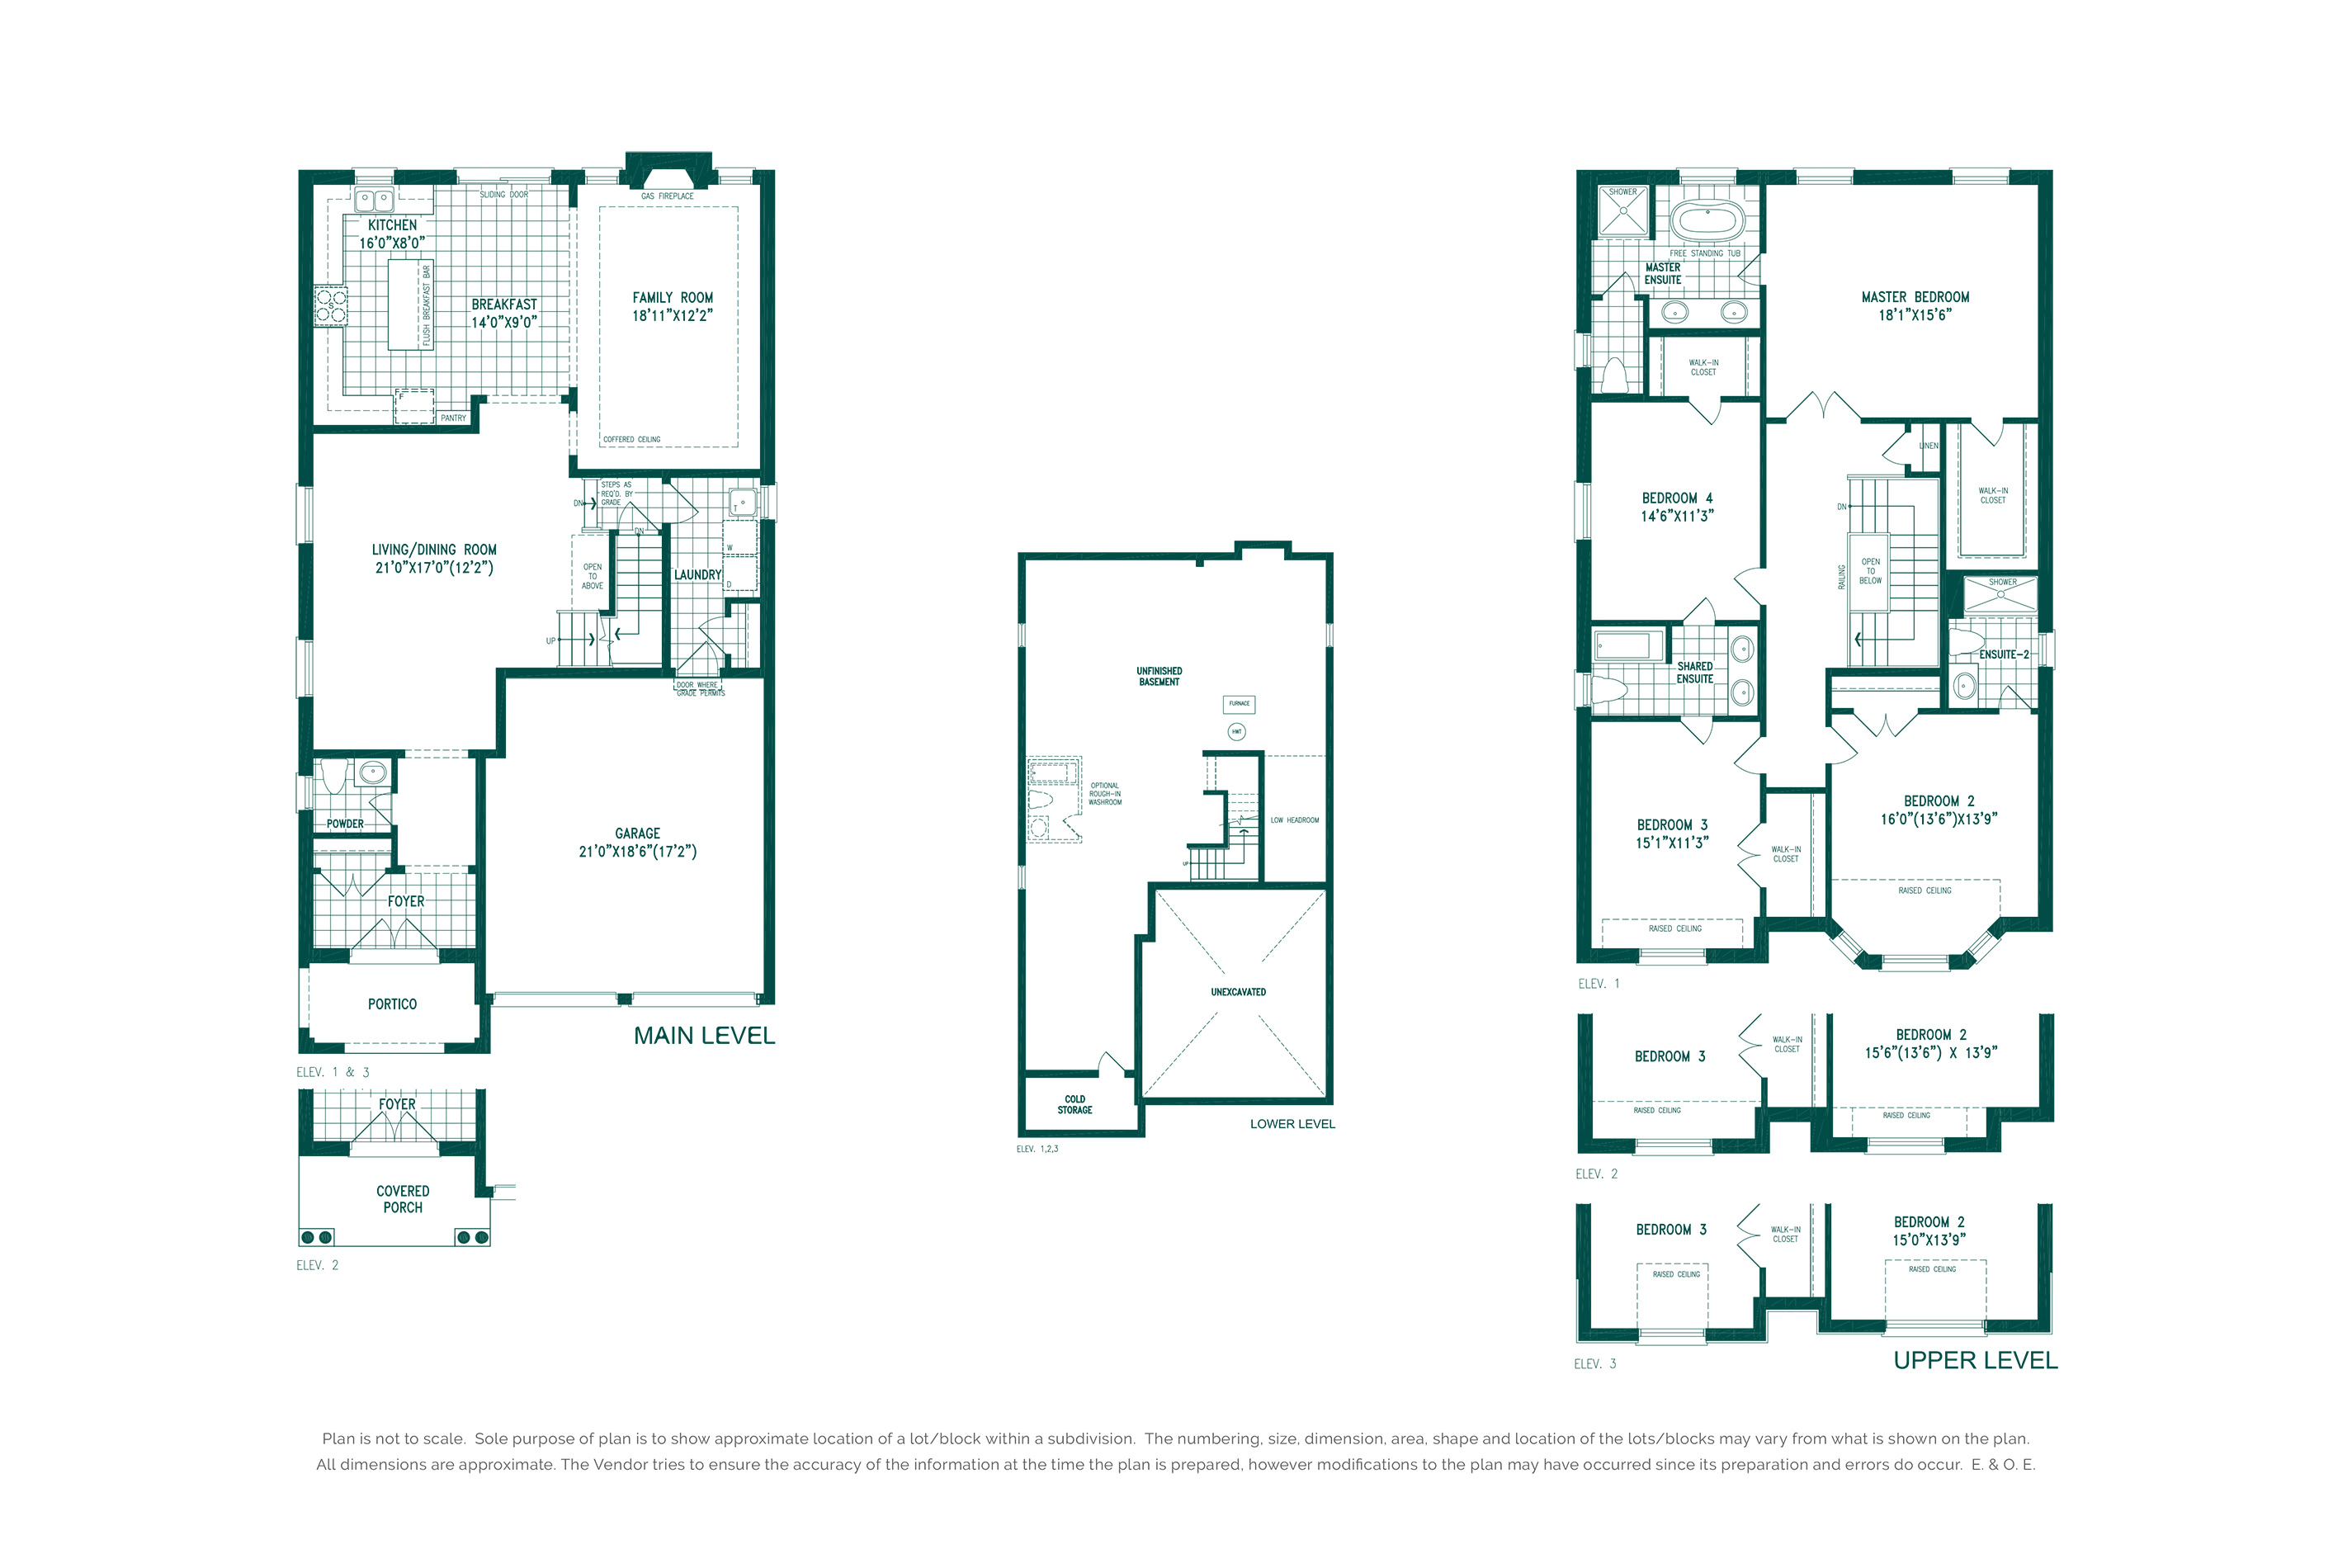 Pinebrook 1A Floorplan